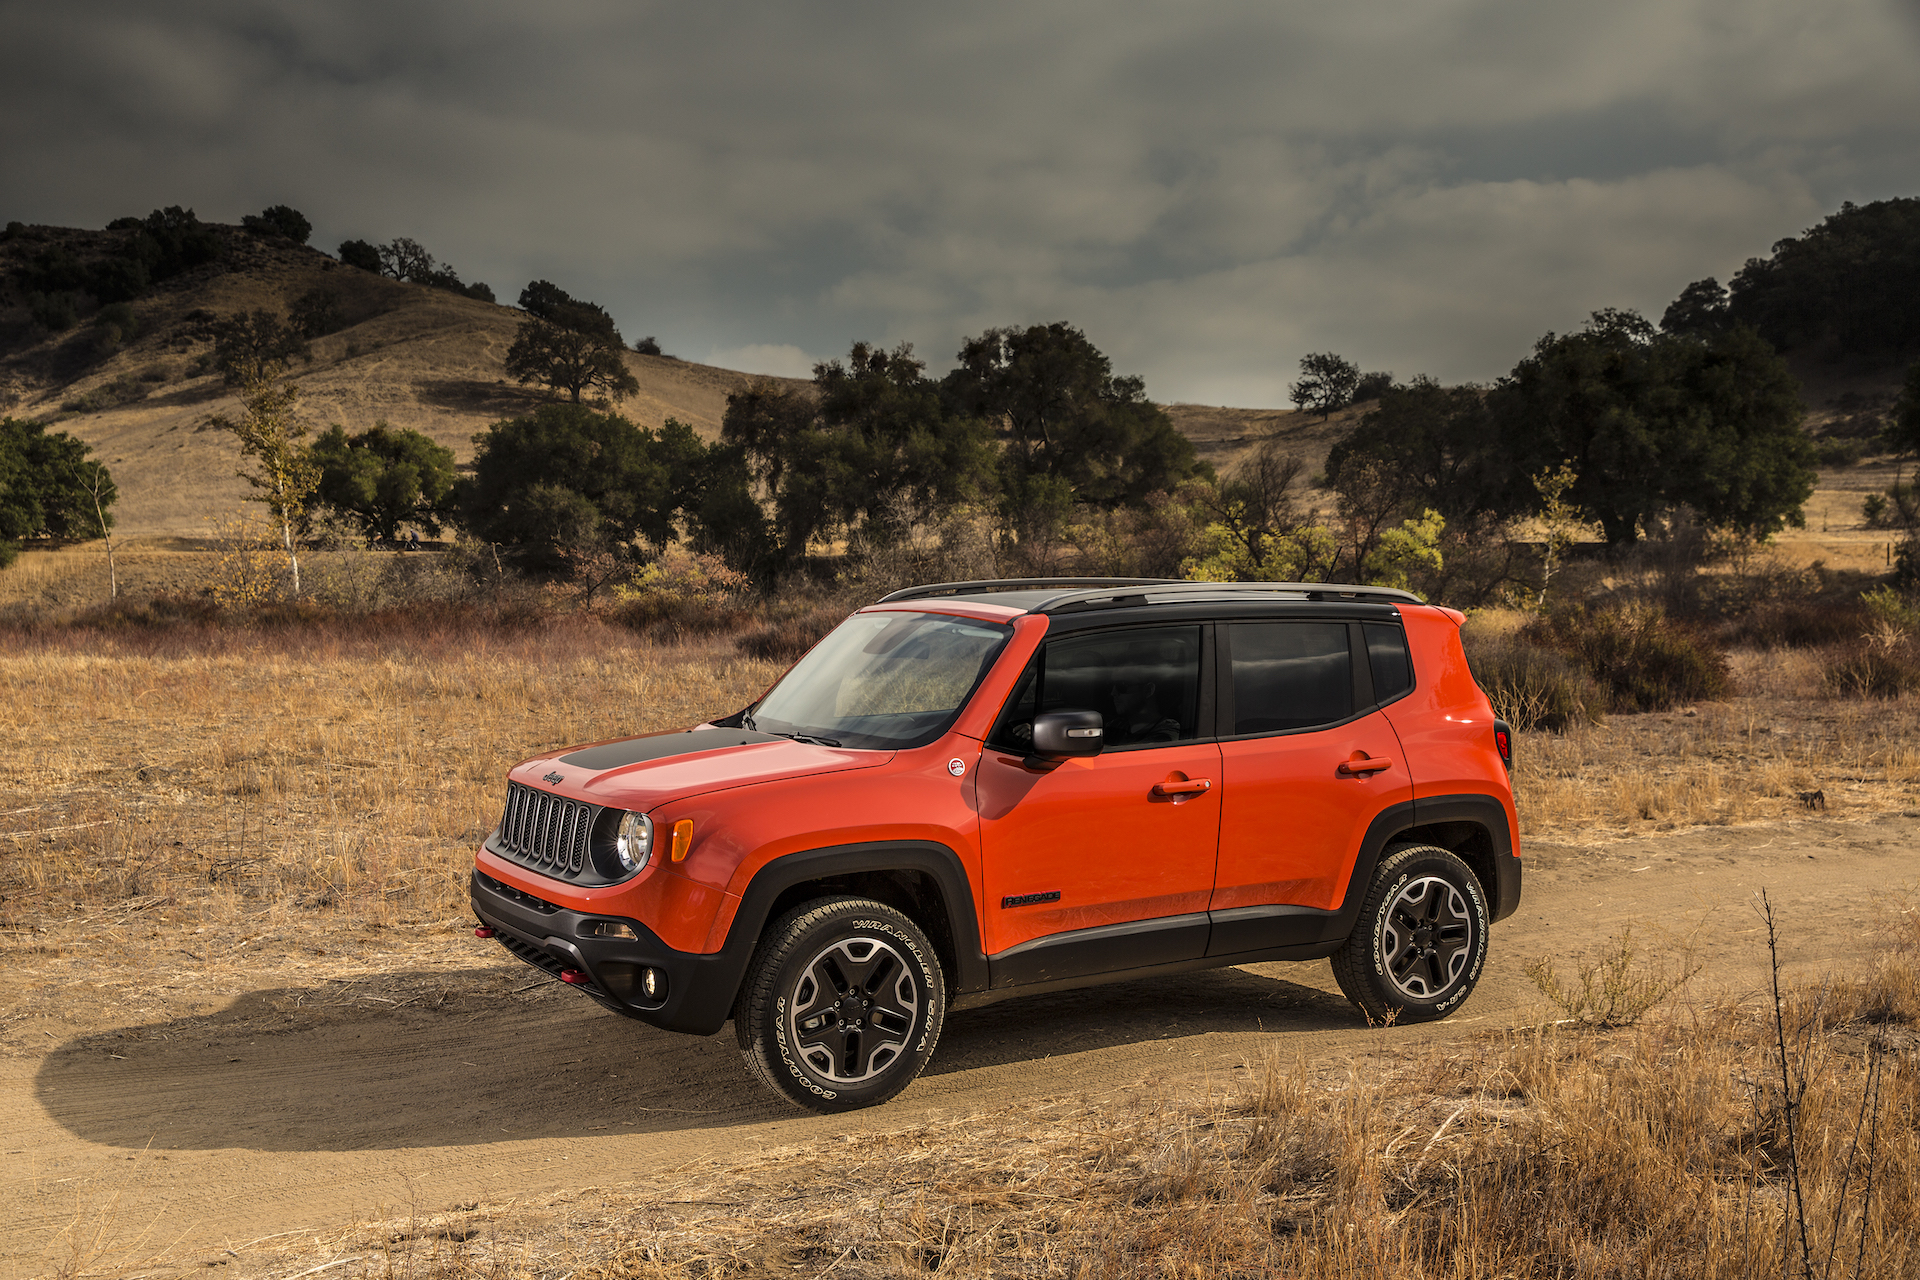 Land Rover Vs Jeep >> 2017 Jeep Renegade vs. 2017 Chevrolet Trax: Compare Cars